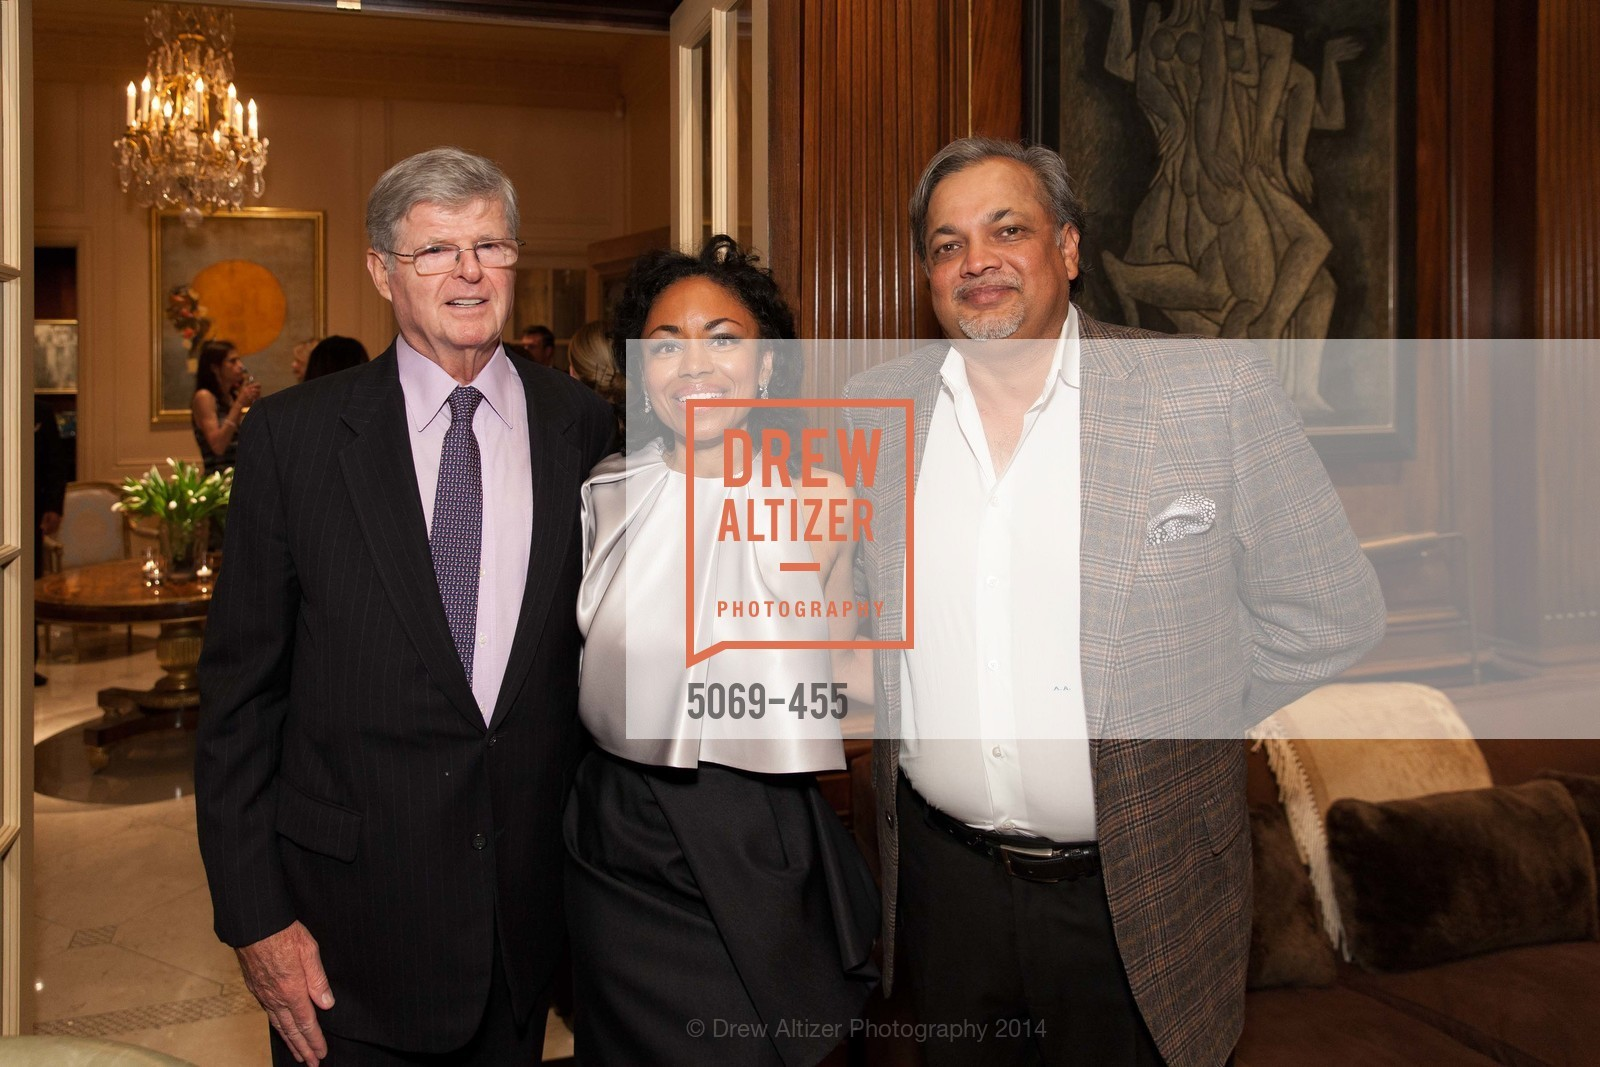 Richard Barker, Tanya Powell, Asim Abdullah, SAN FRANCISCO BALLET Grand Benefactors Reception, US. US, January 8th, 2014,Drew Altizer, Drew Altizer Photography, full-service agency, private events, San Francisco photographer, photographer california